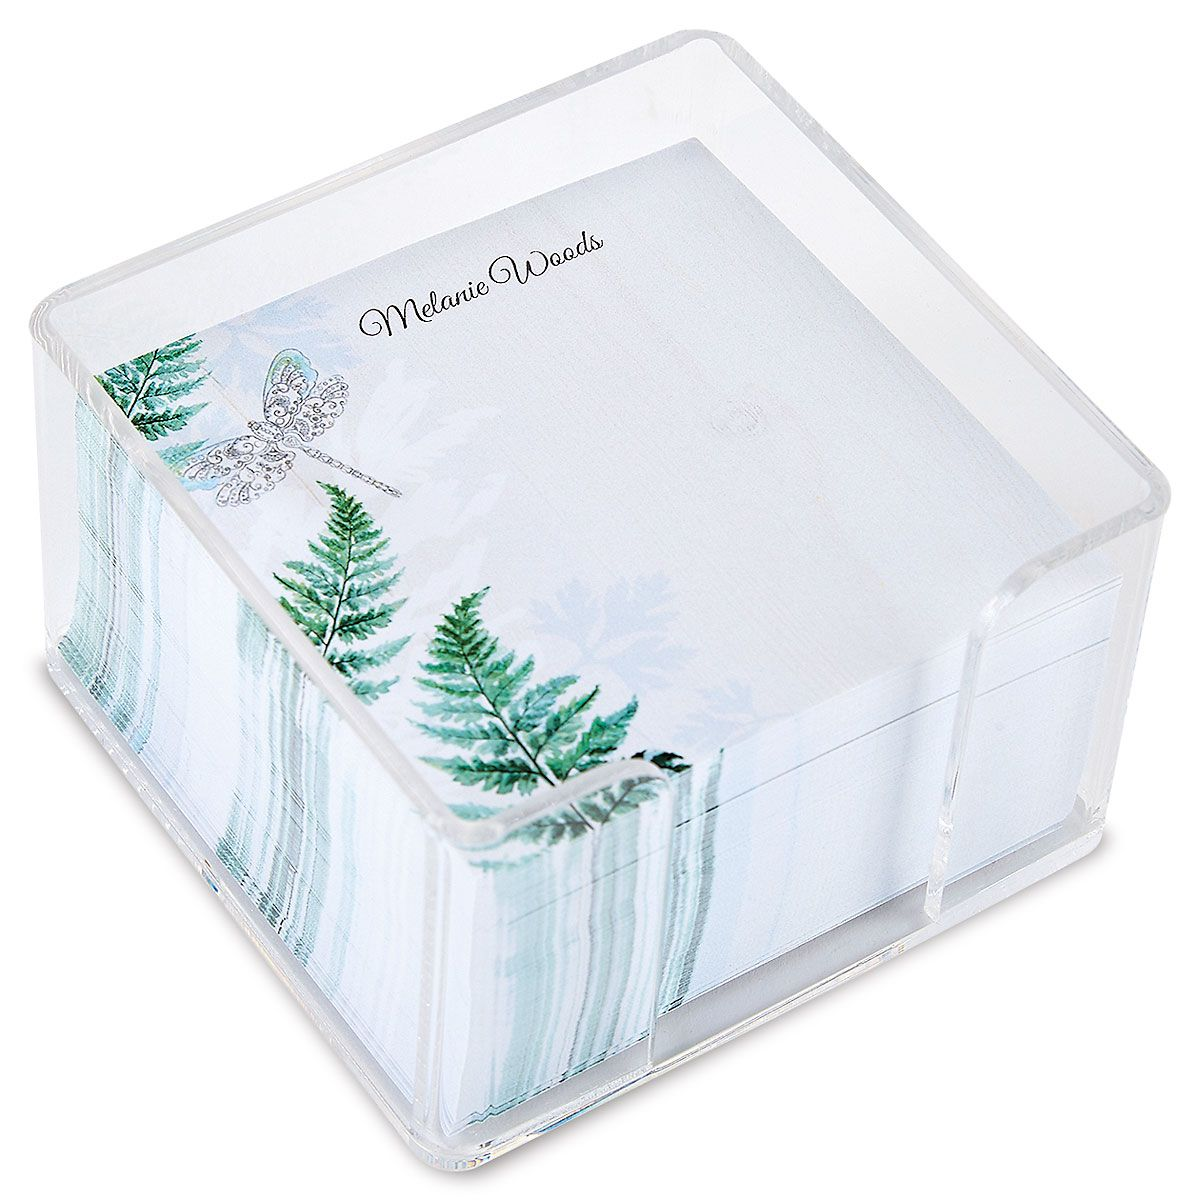 Forest Impressions Personalized Note Sheets in a Cube